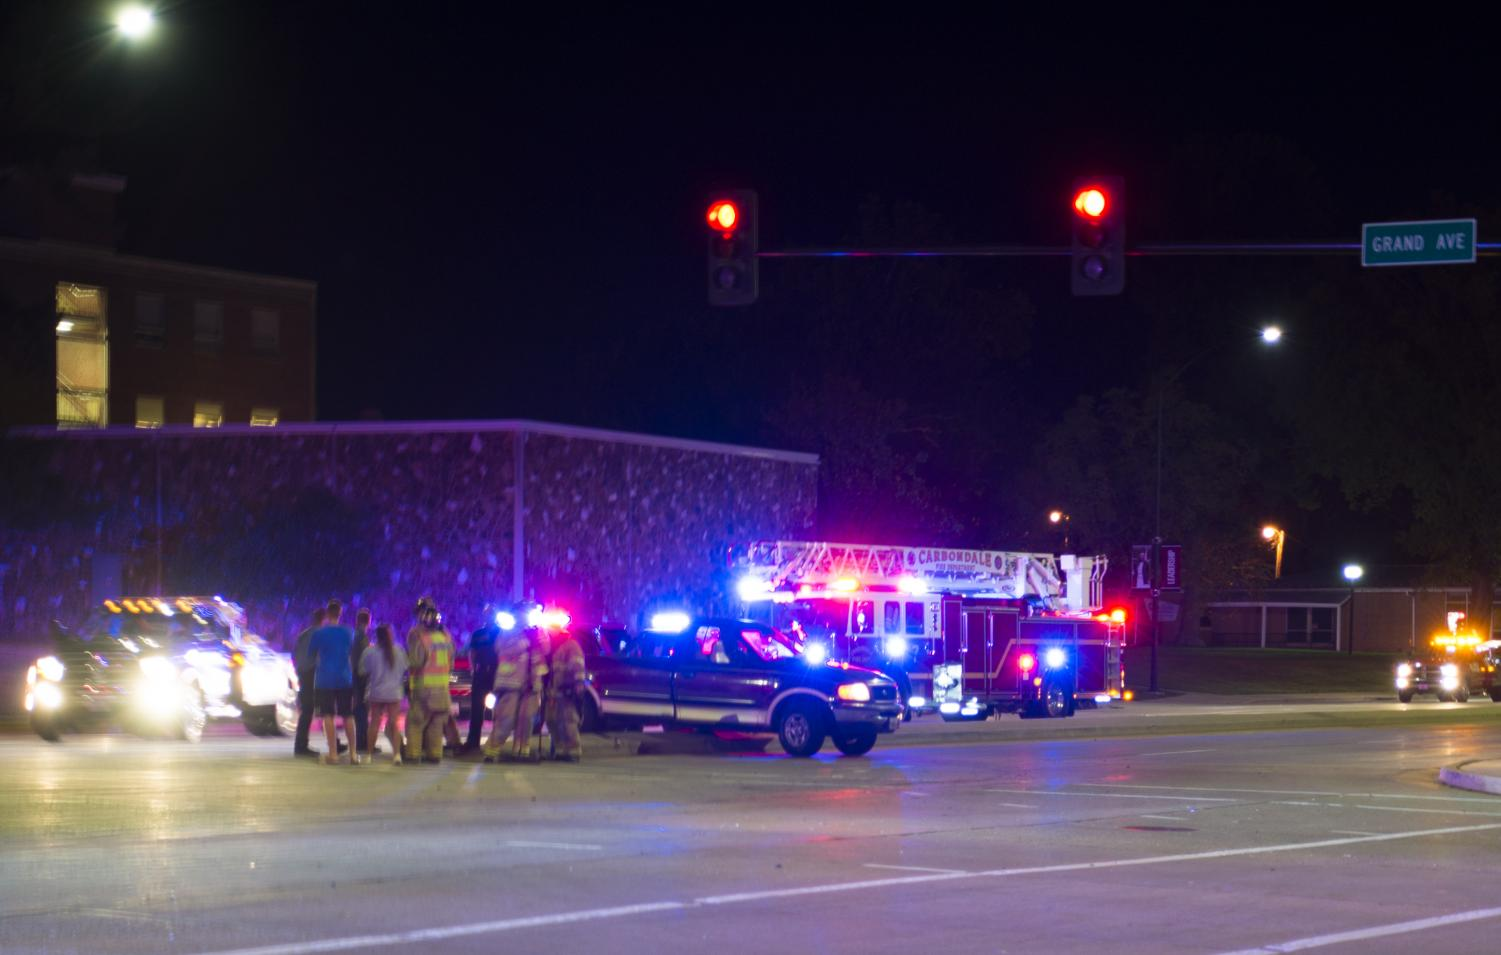 Two-vehicle accident blocks intersection at Grand and S